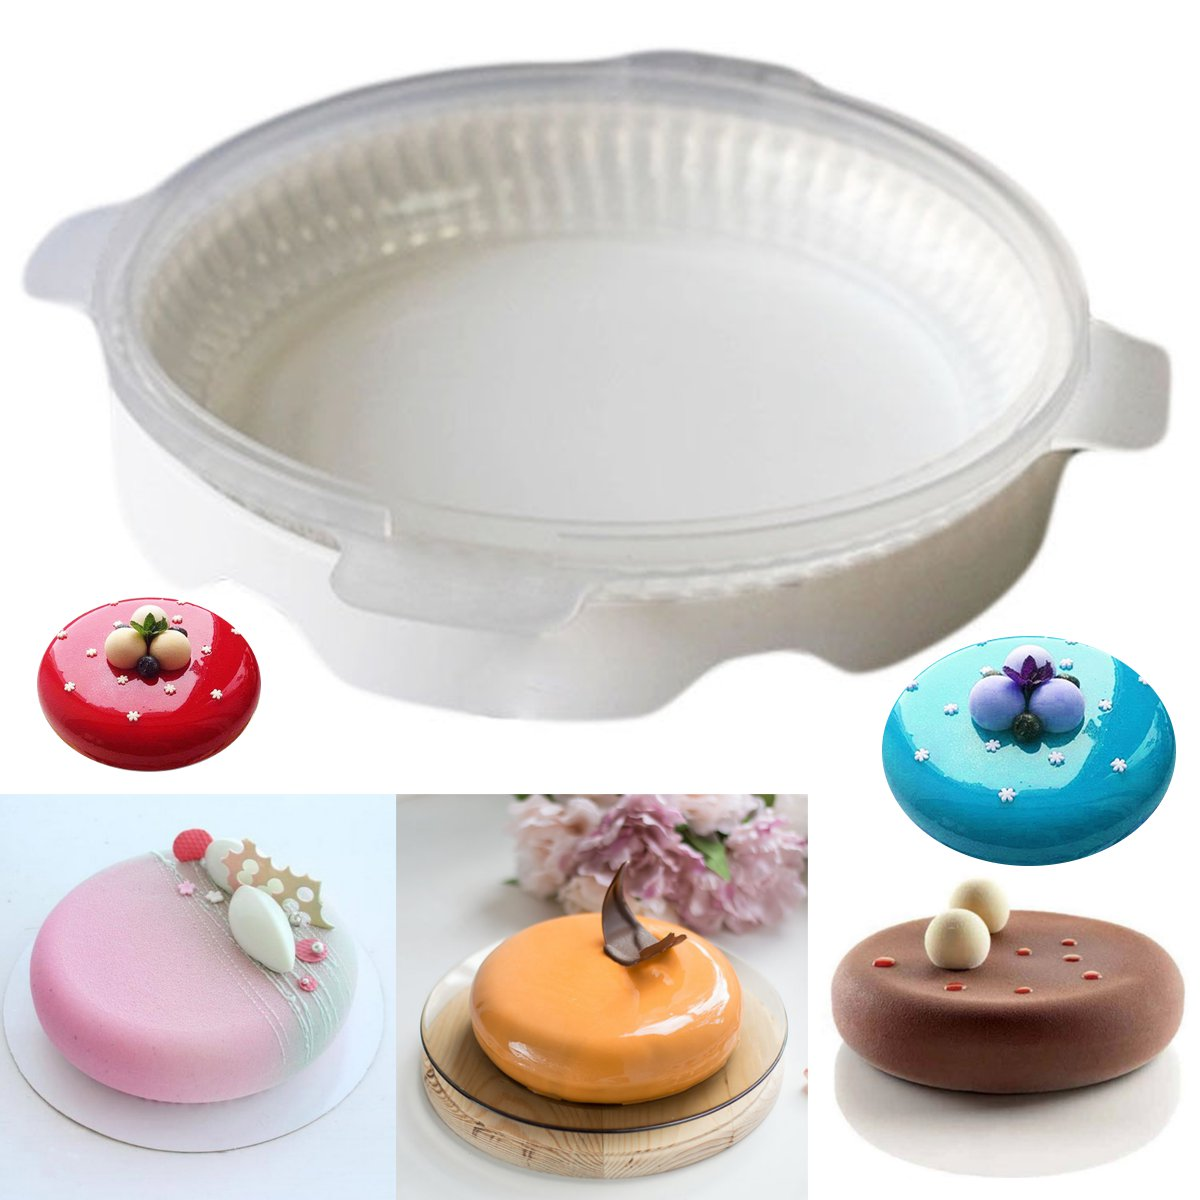 Click here to buy Meigar Eclipse Silicone Cake Mold For Mousses Ice Cream Chiffon Baking Decorating Tools.